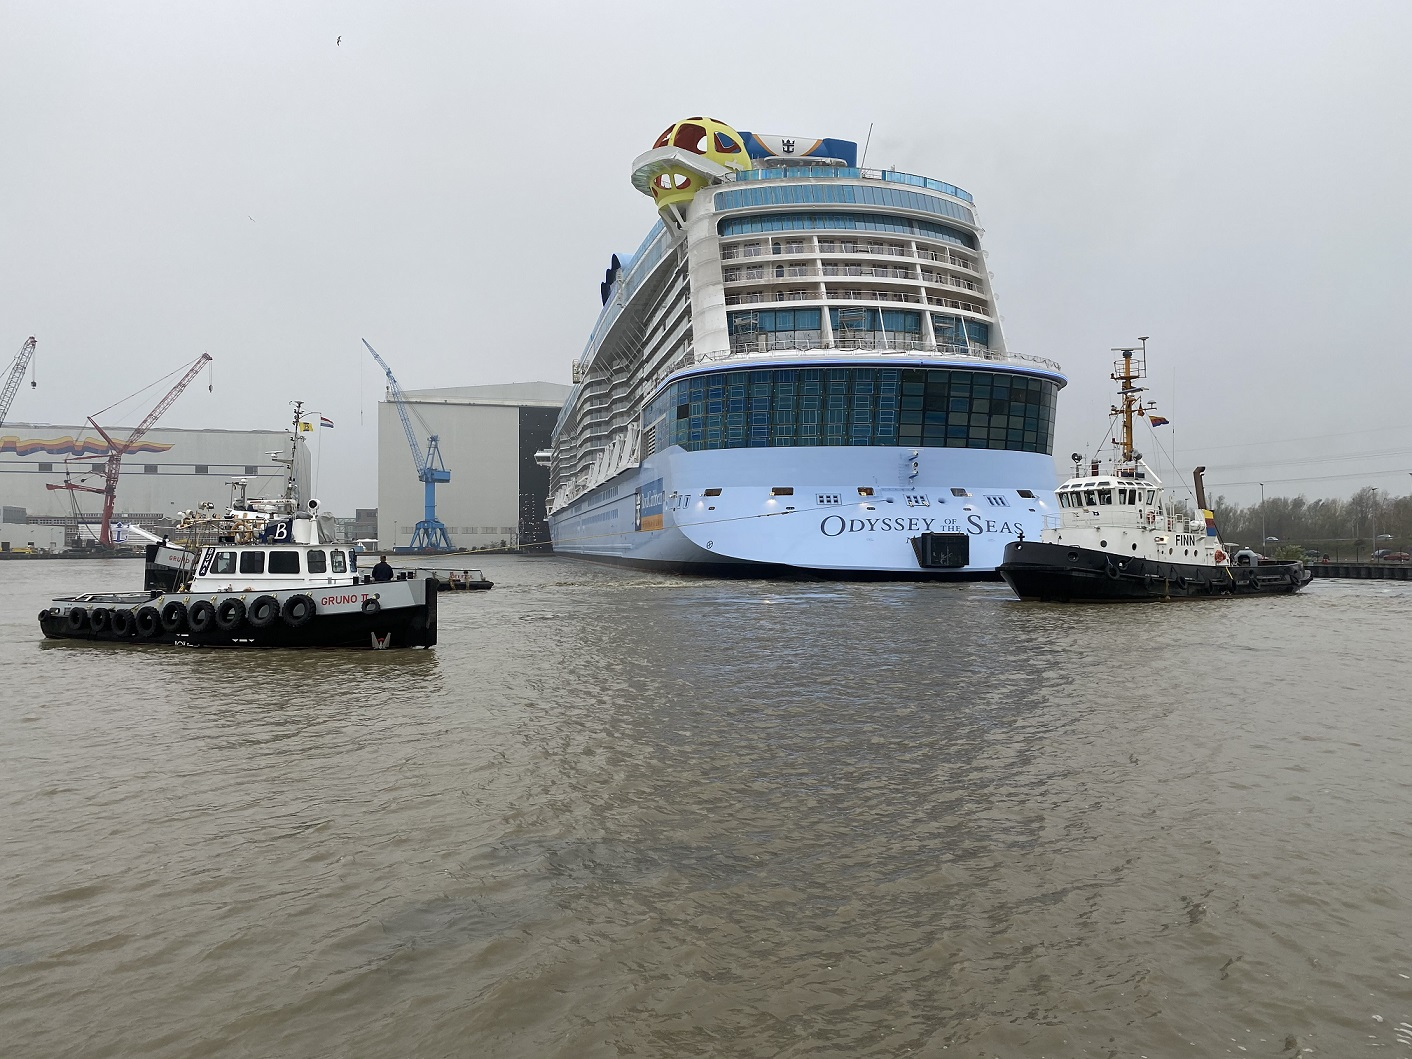 Odyssey of the Seas float-out. Foto: Christoph Assies